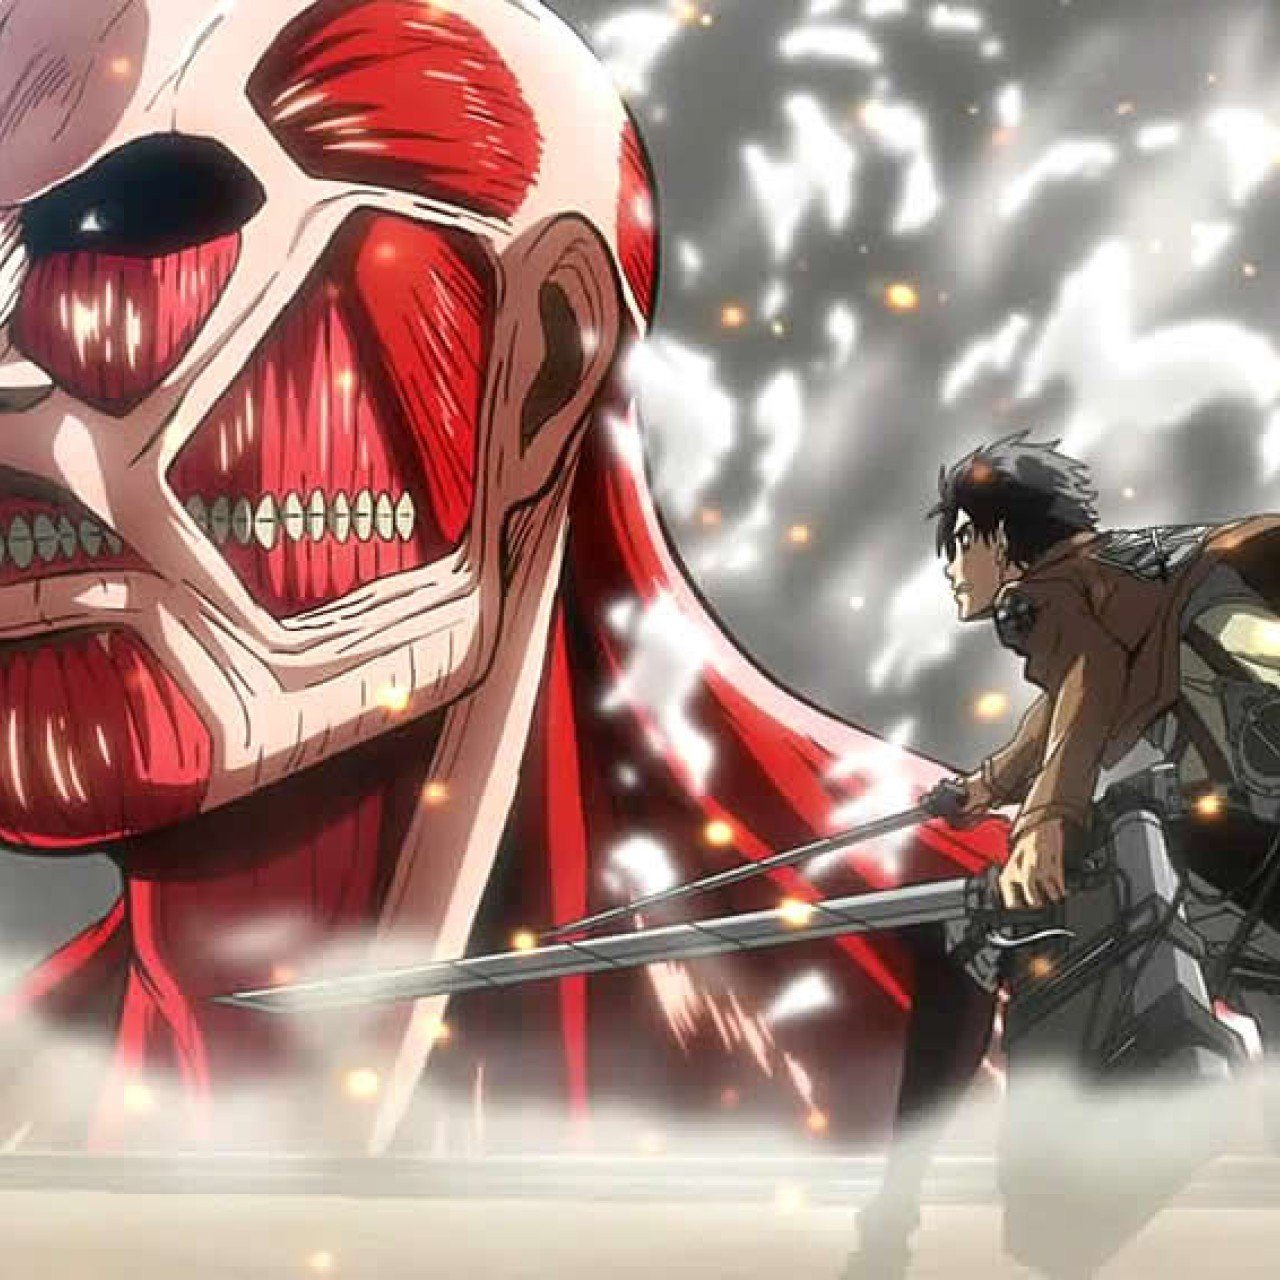 Attack On Titan Season 2 Is A Love Letter To Fans Review Yp South China Morning Post